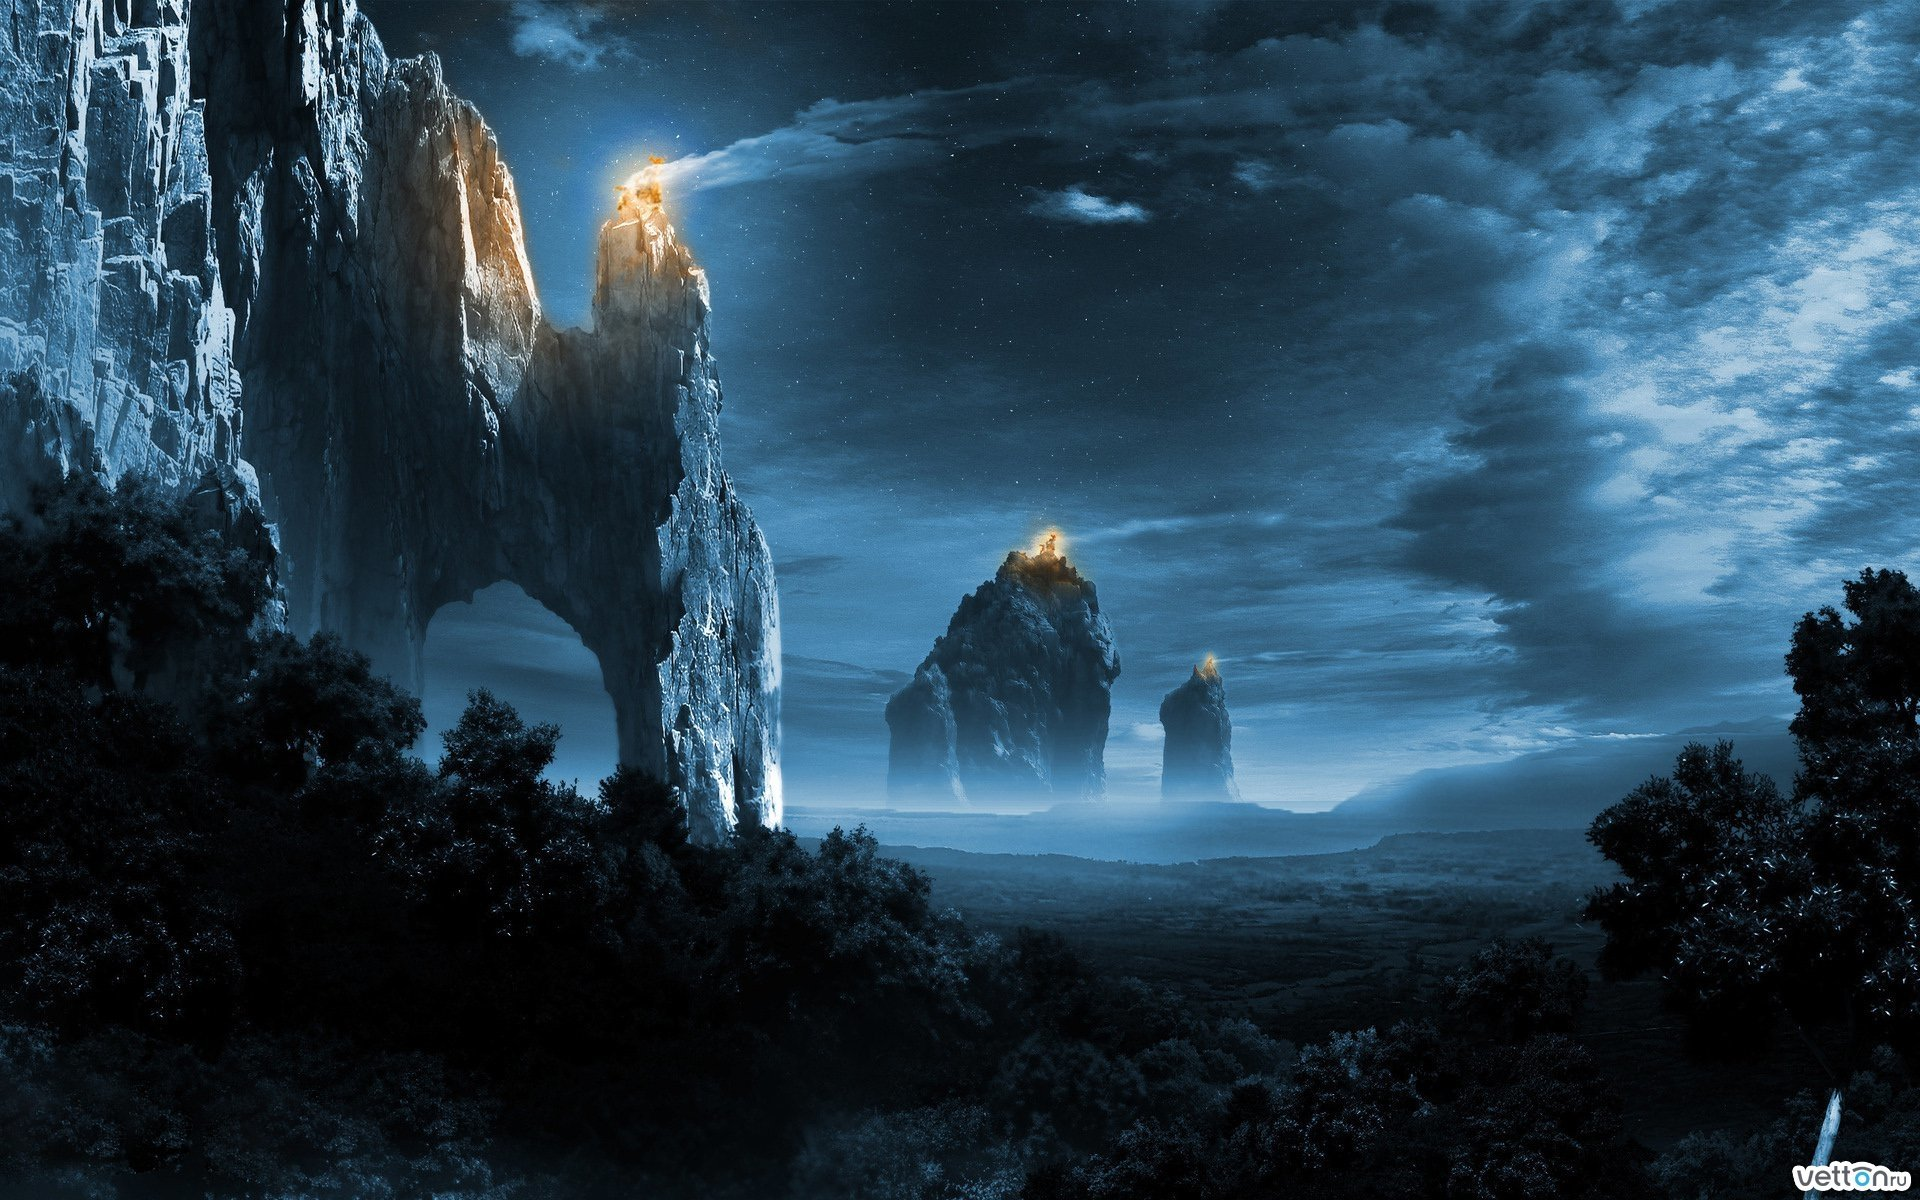 Herr der Ringe Full HD Wallpaper and Hintergrund ...